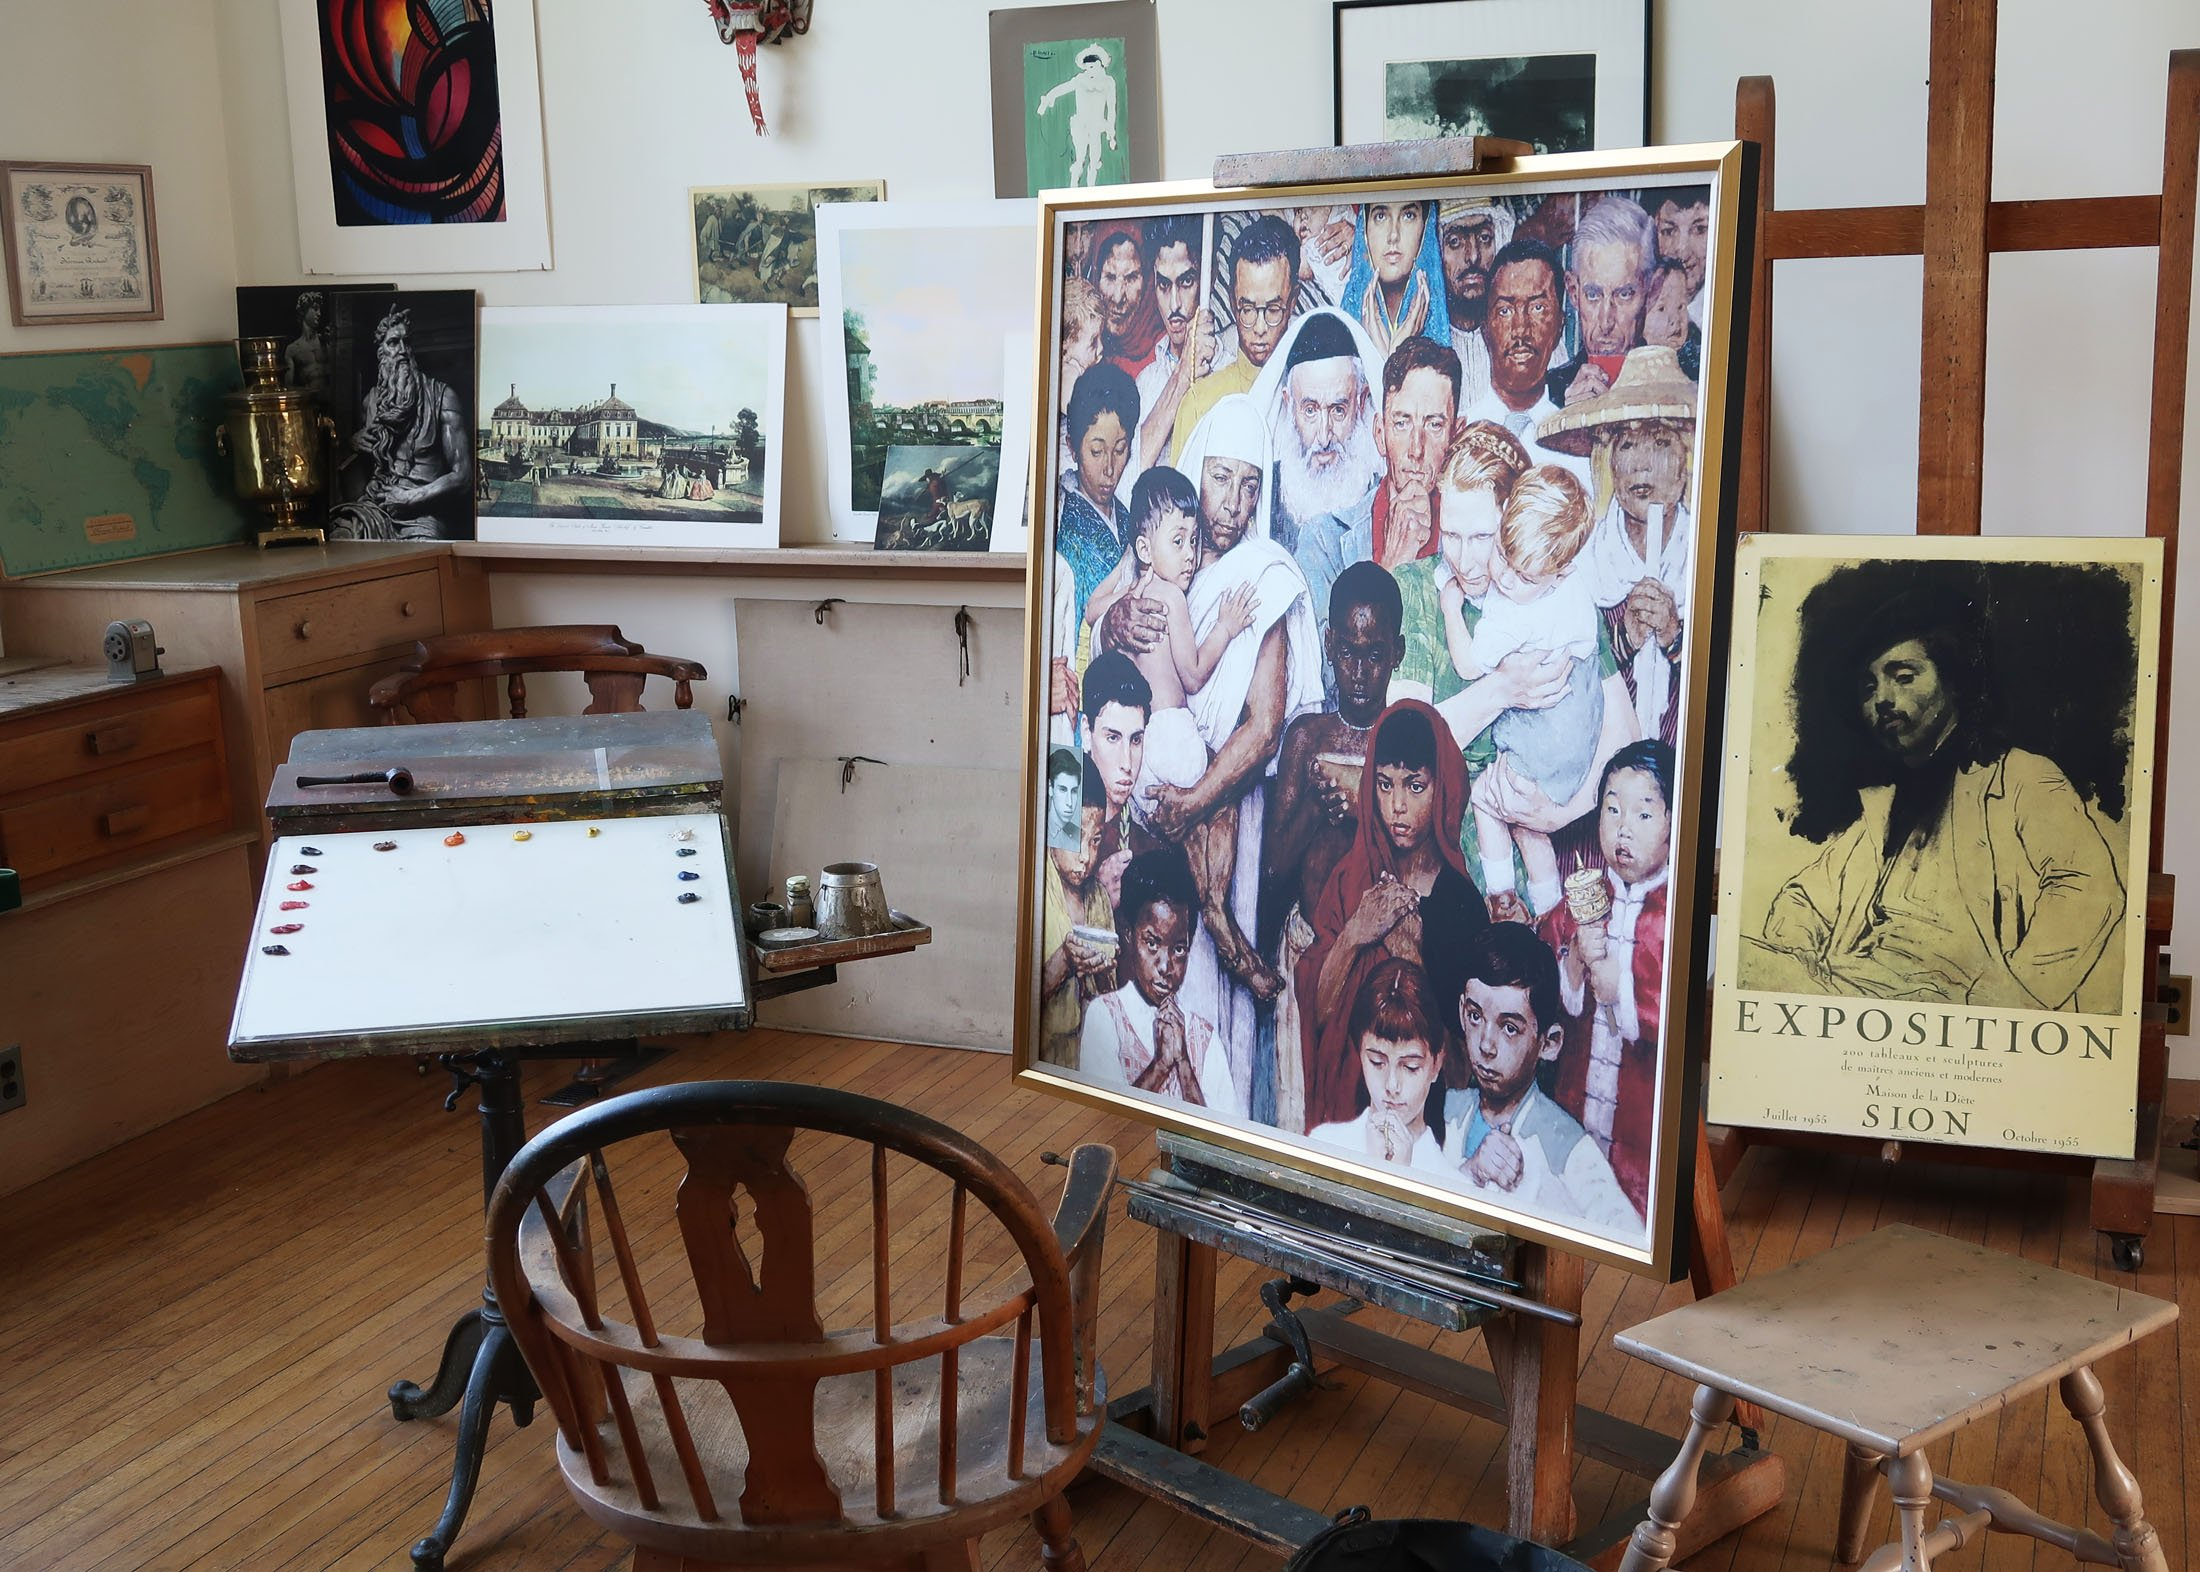 Norman Rockwell's studio in Stockbridge, Mass., where he lived for 25 years. (Craig Davis/Craigslegztravels.com)